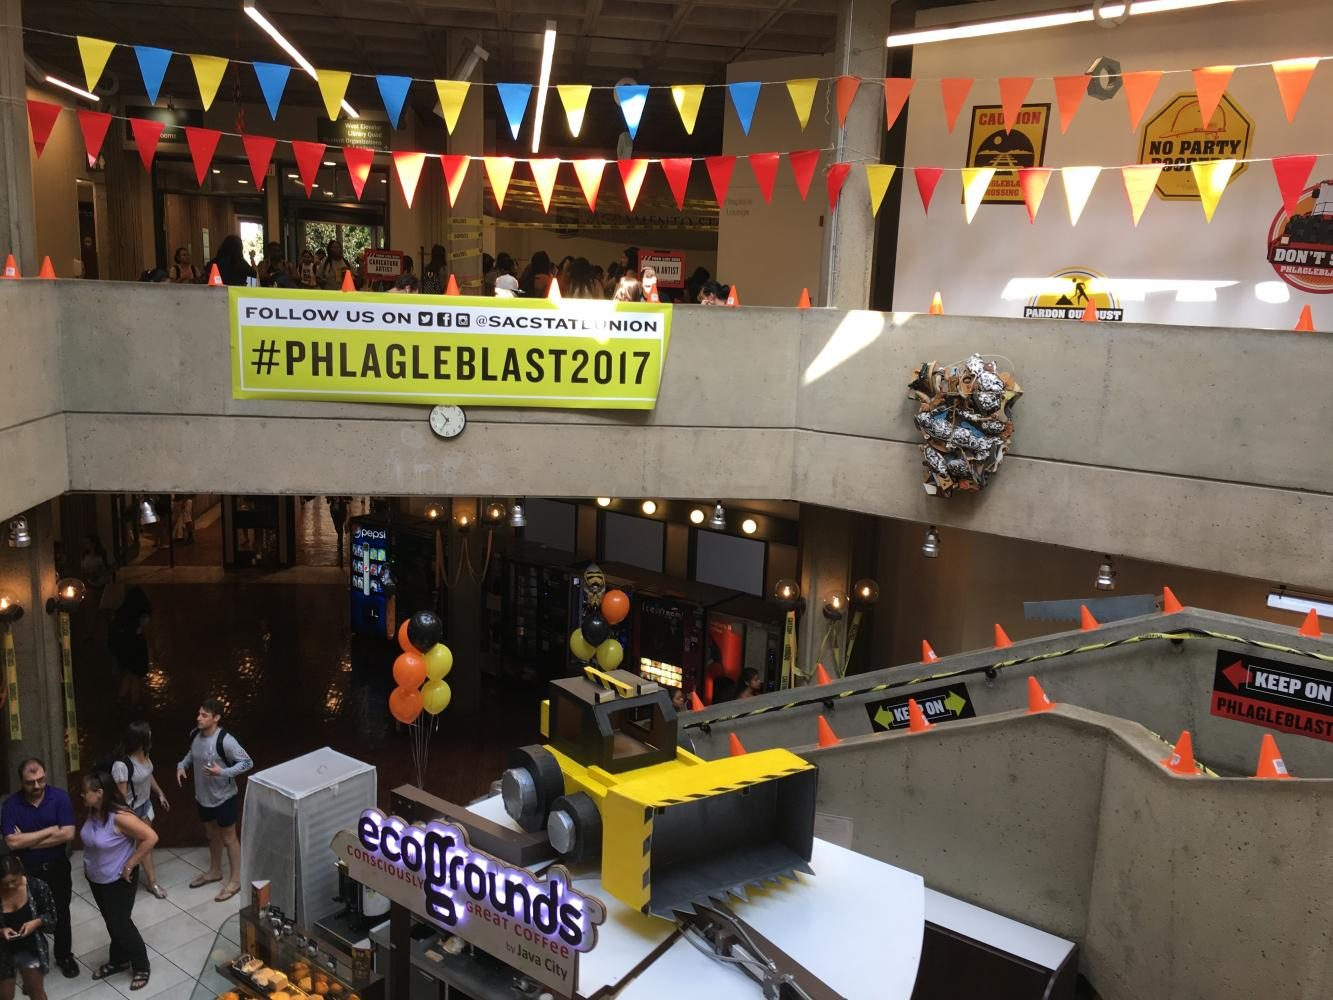 The+18th+annual+Phlagleblast+was+ornamented+in+construction-themed+decor+in+the+University+Union+on+Wednesday.